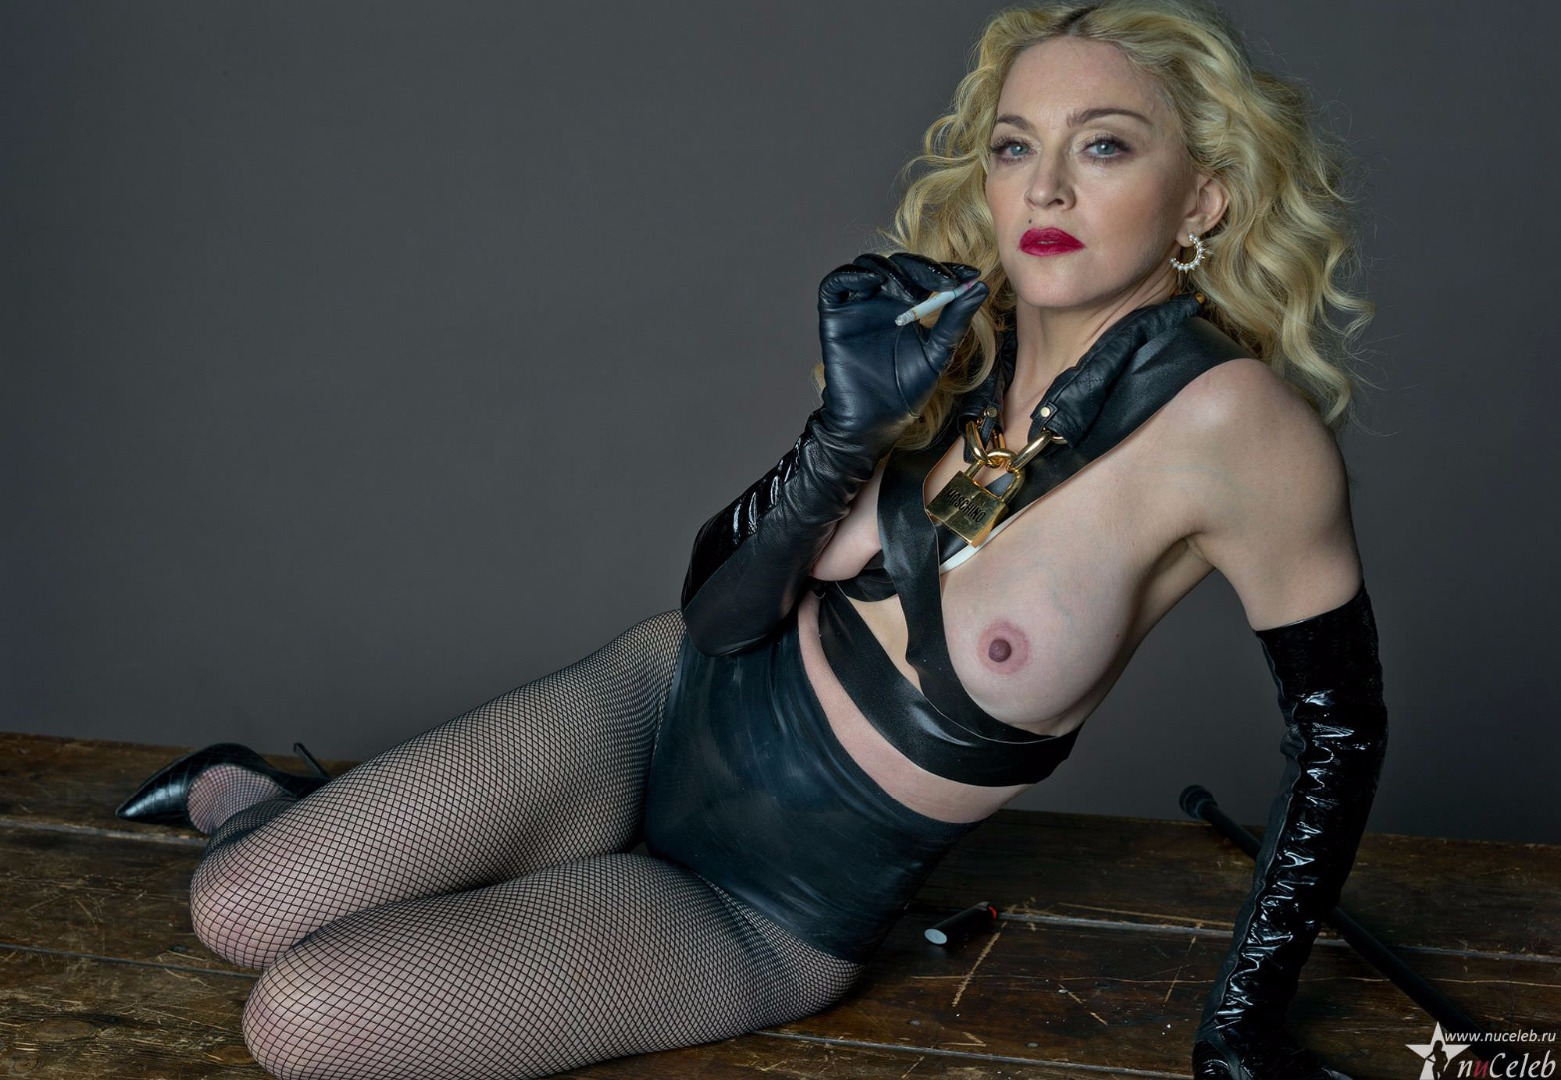 madonna-the-singer-naked-innocent-and-busty